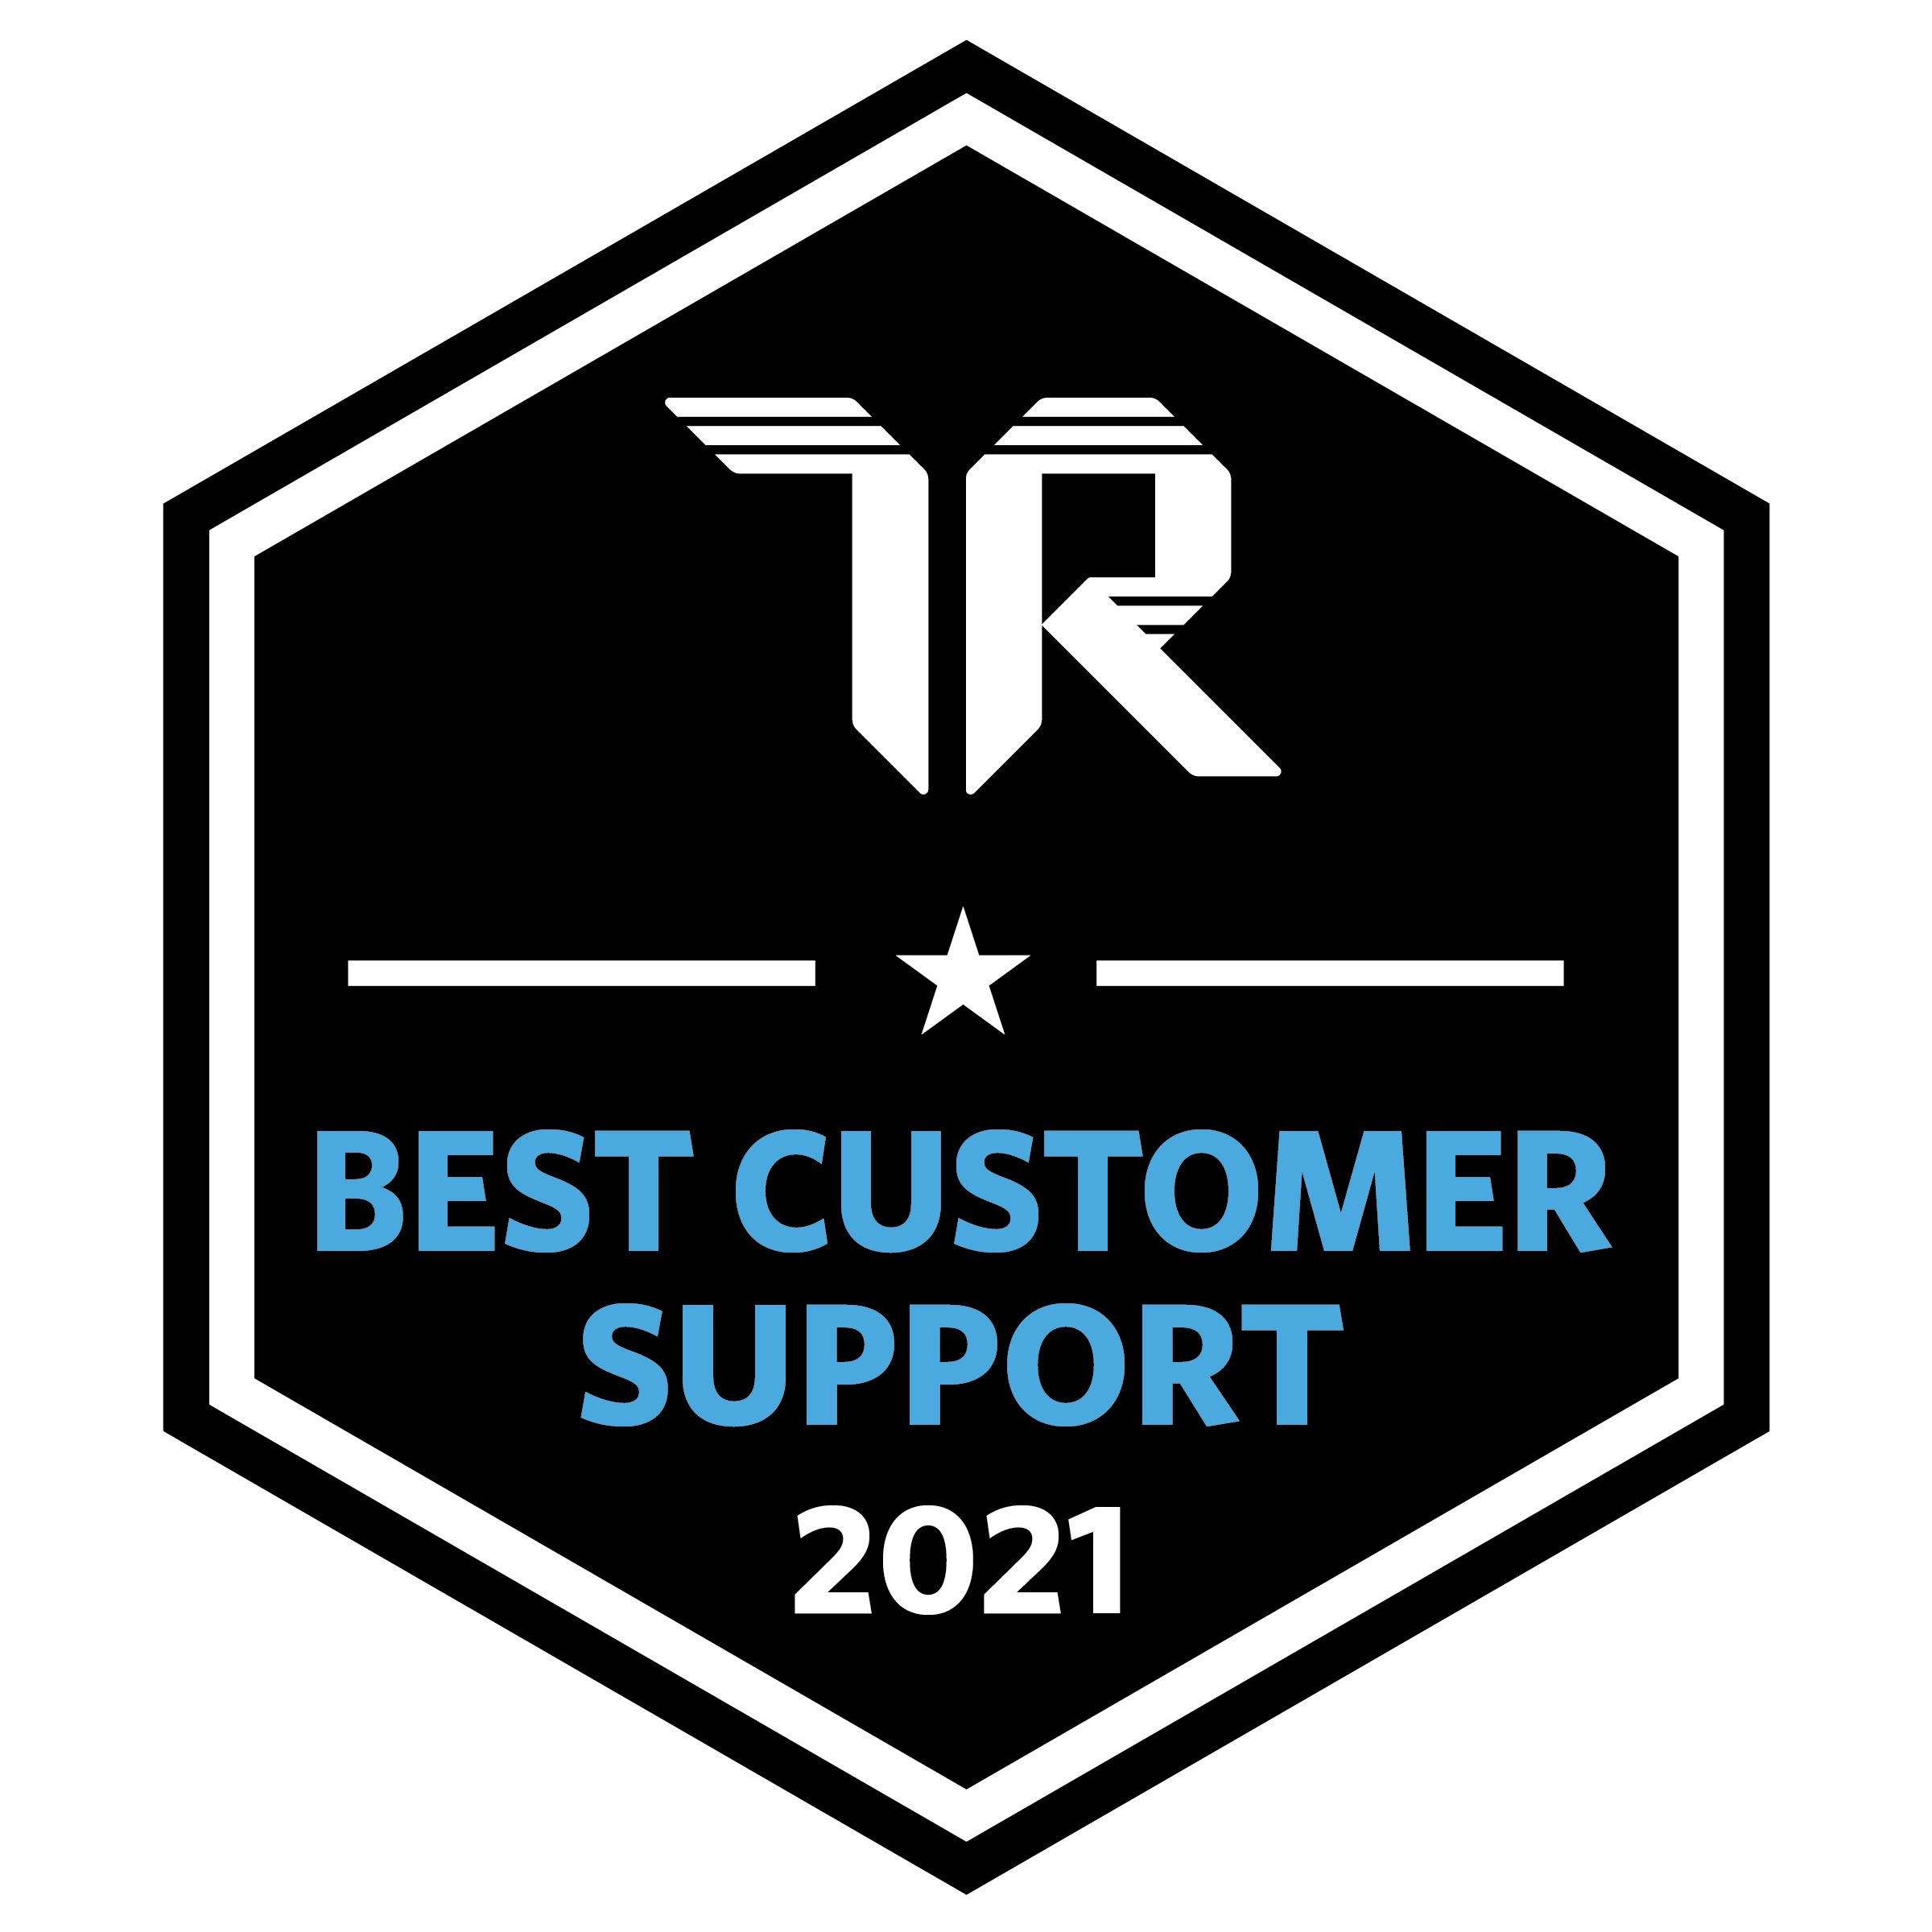 Best Customer Support - Security Awareness Training